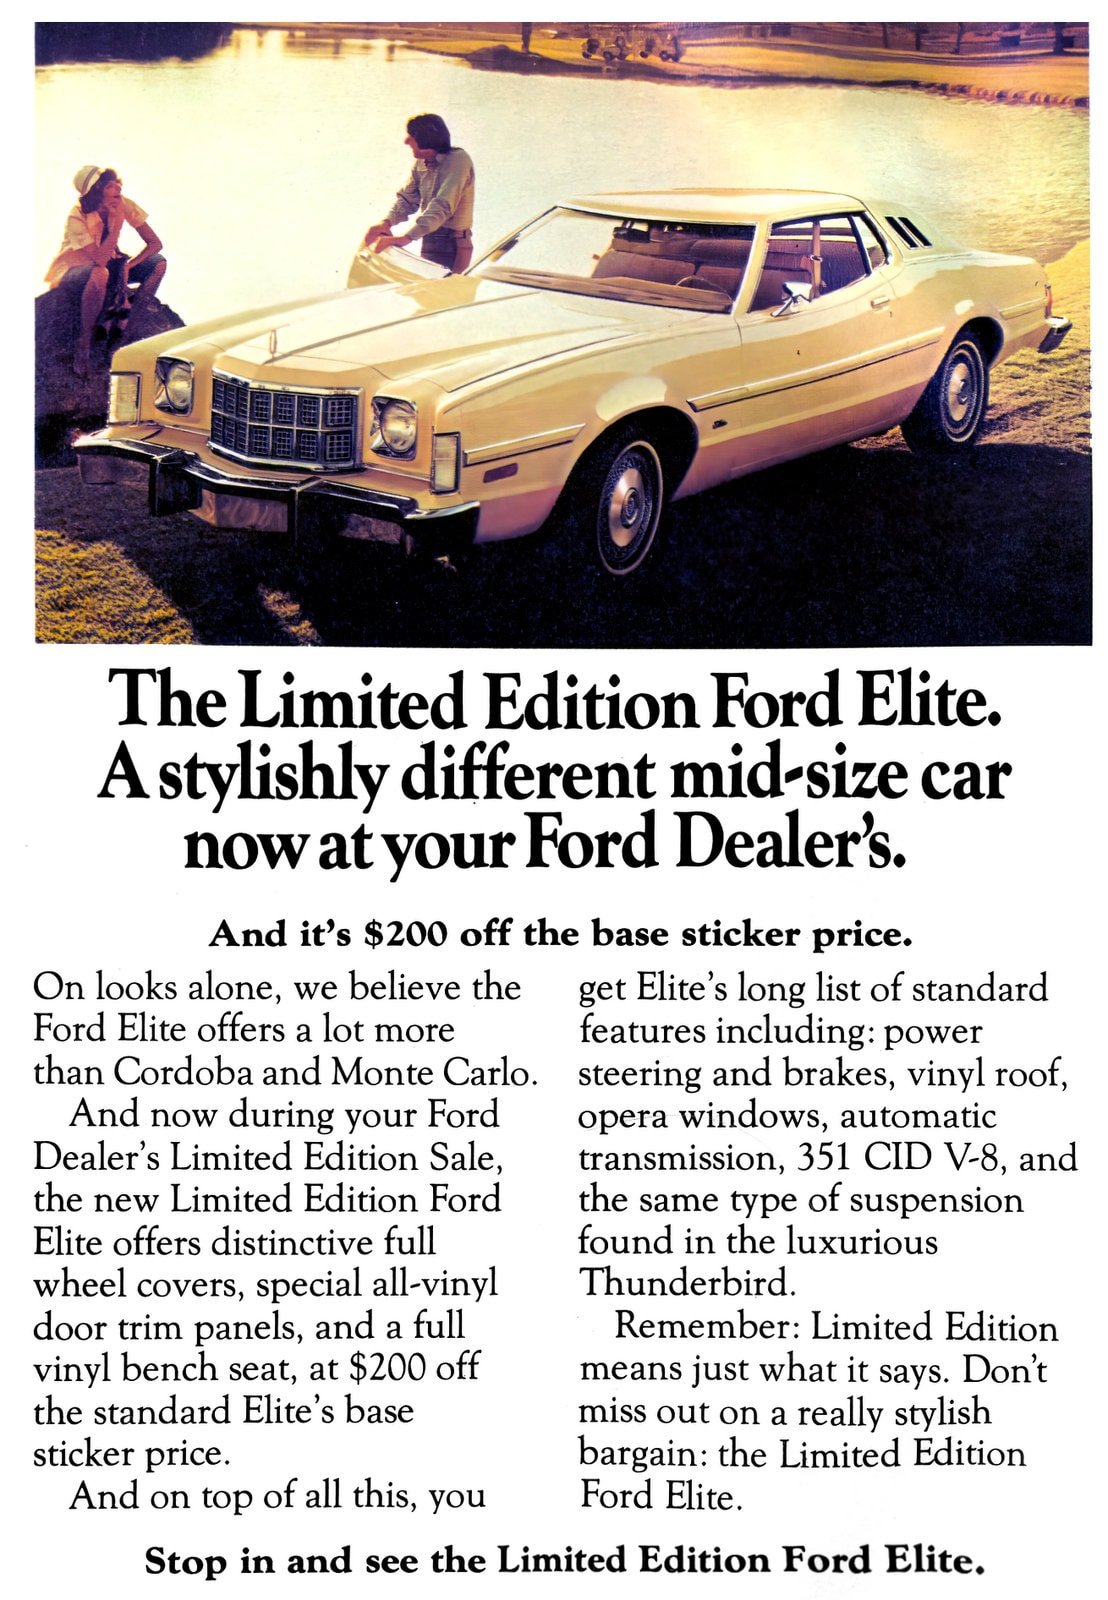 Classic Limited Edition Ford Elite (1970s)